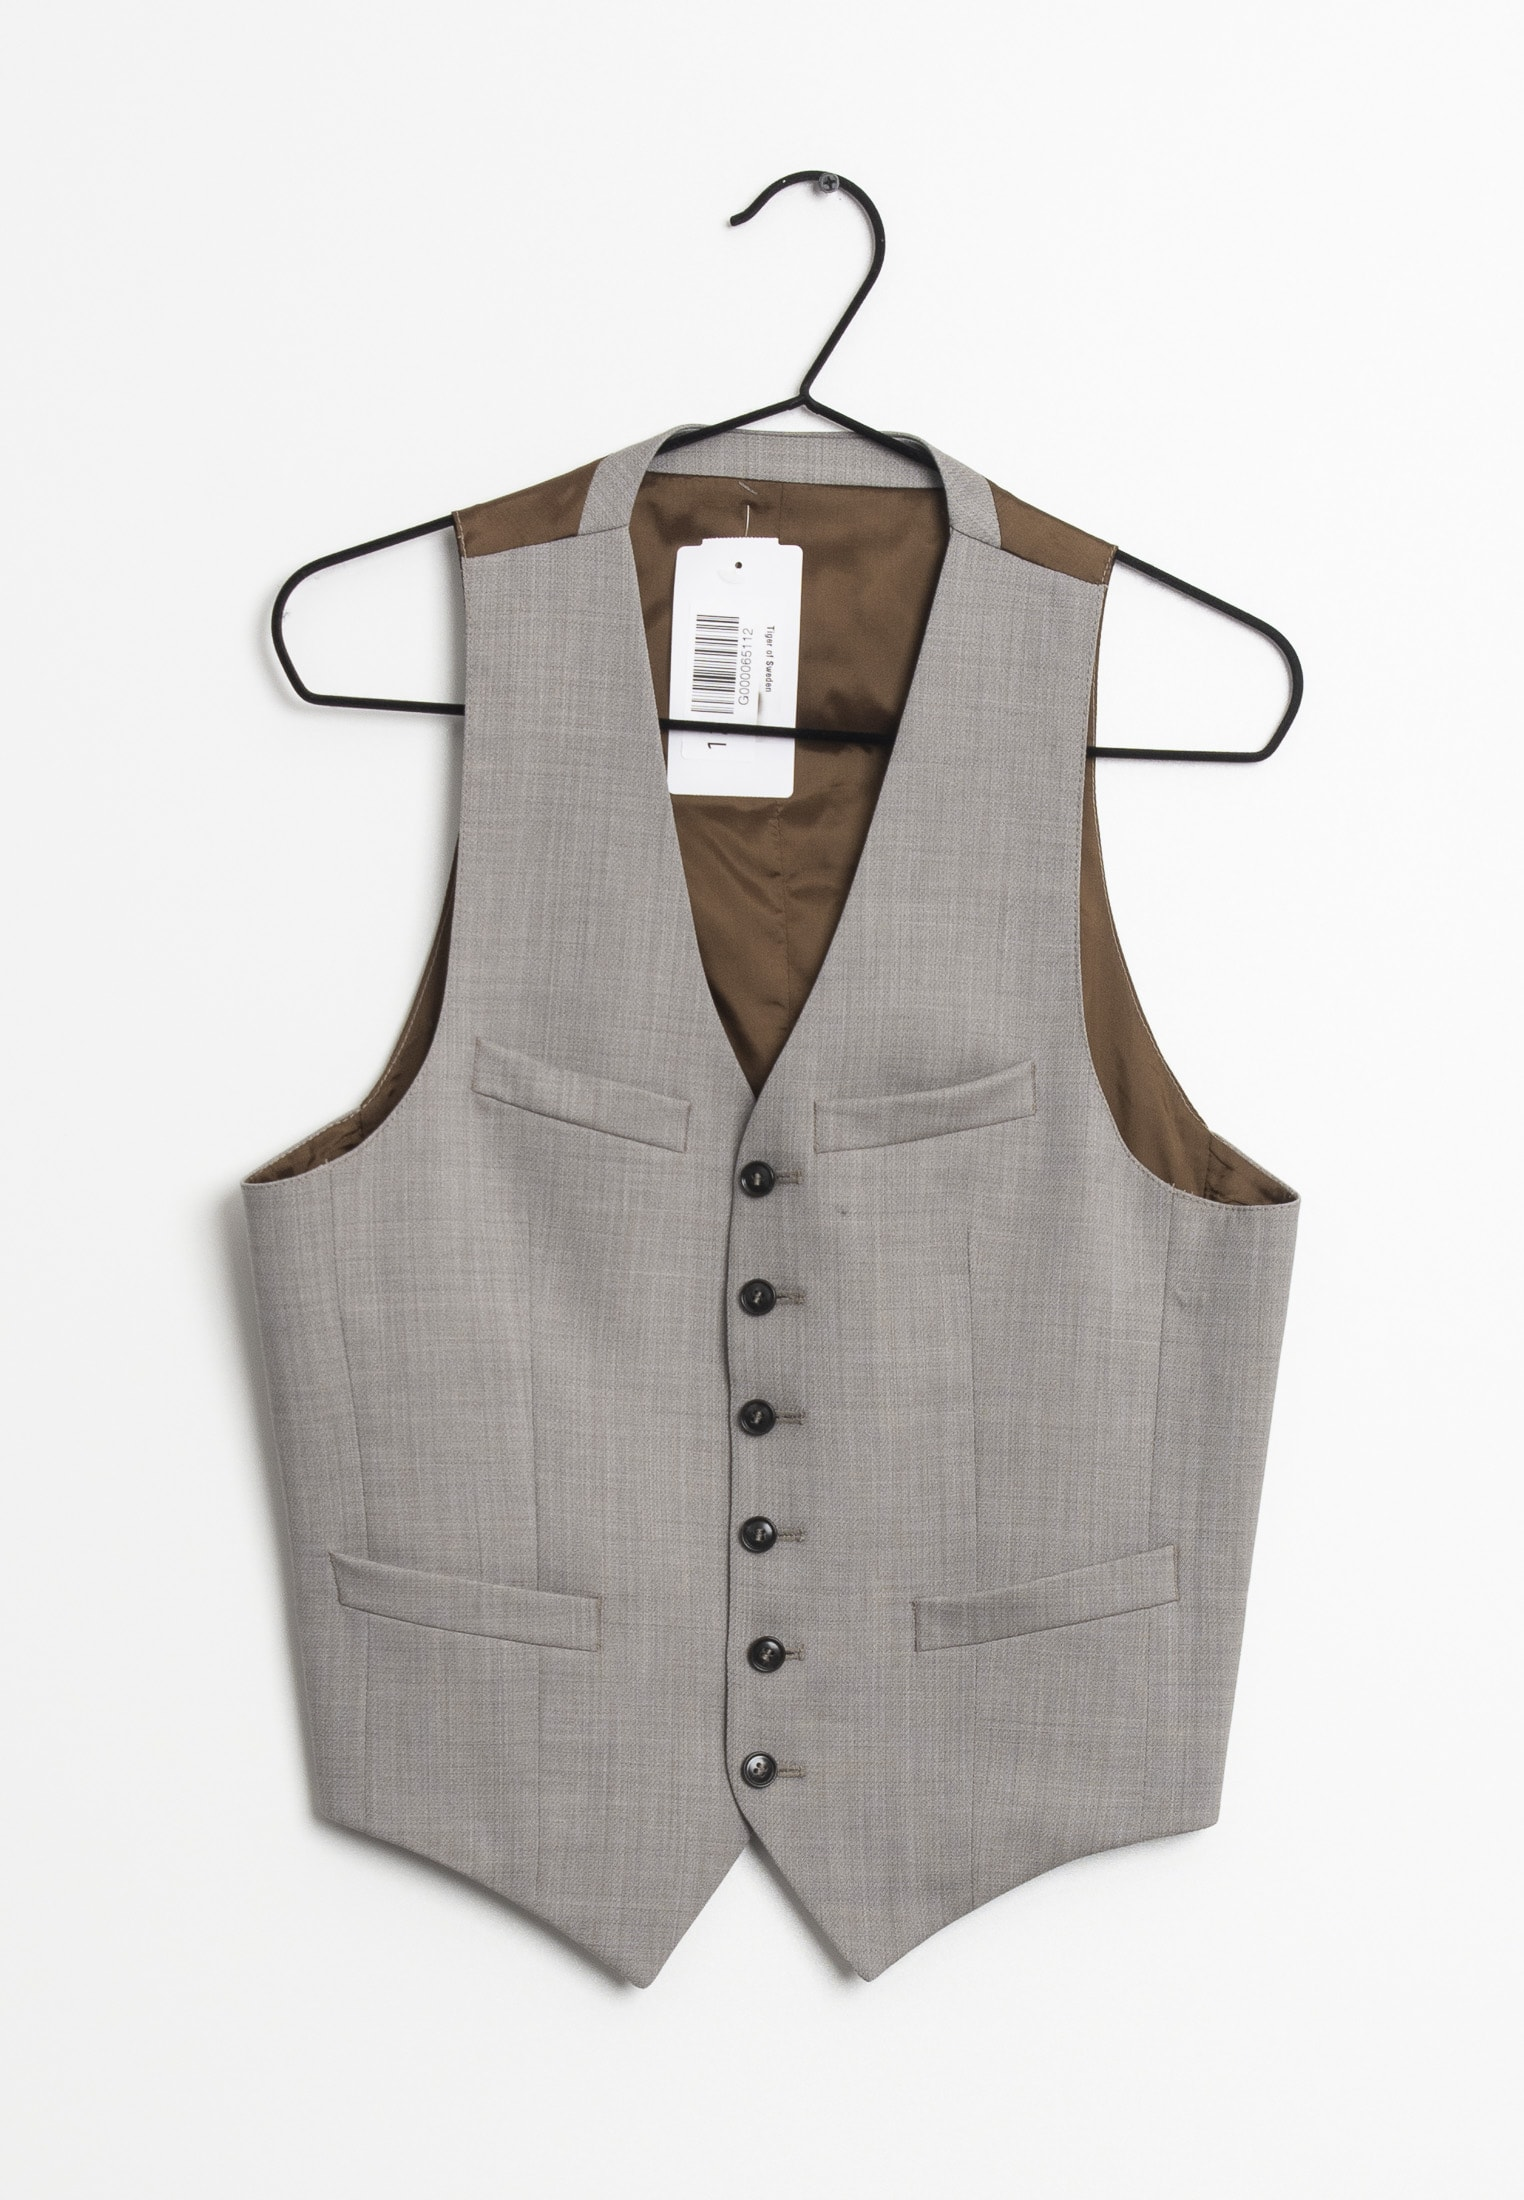 Tiger of Sweden vest, brun, 44